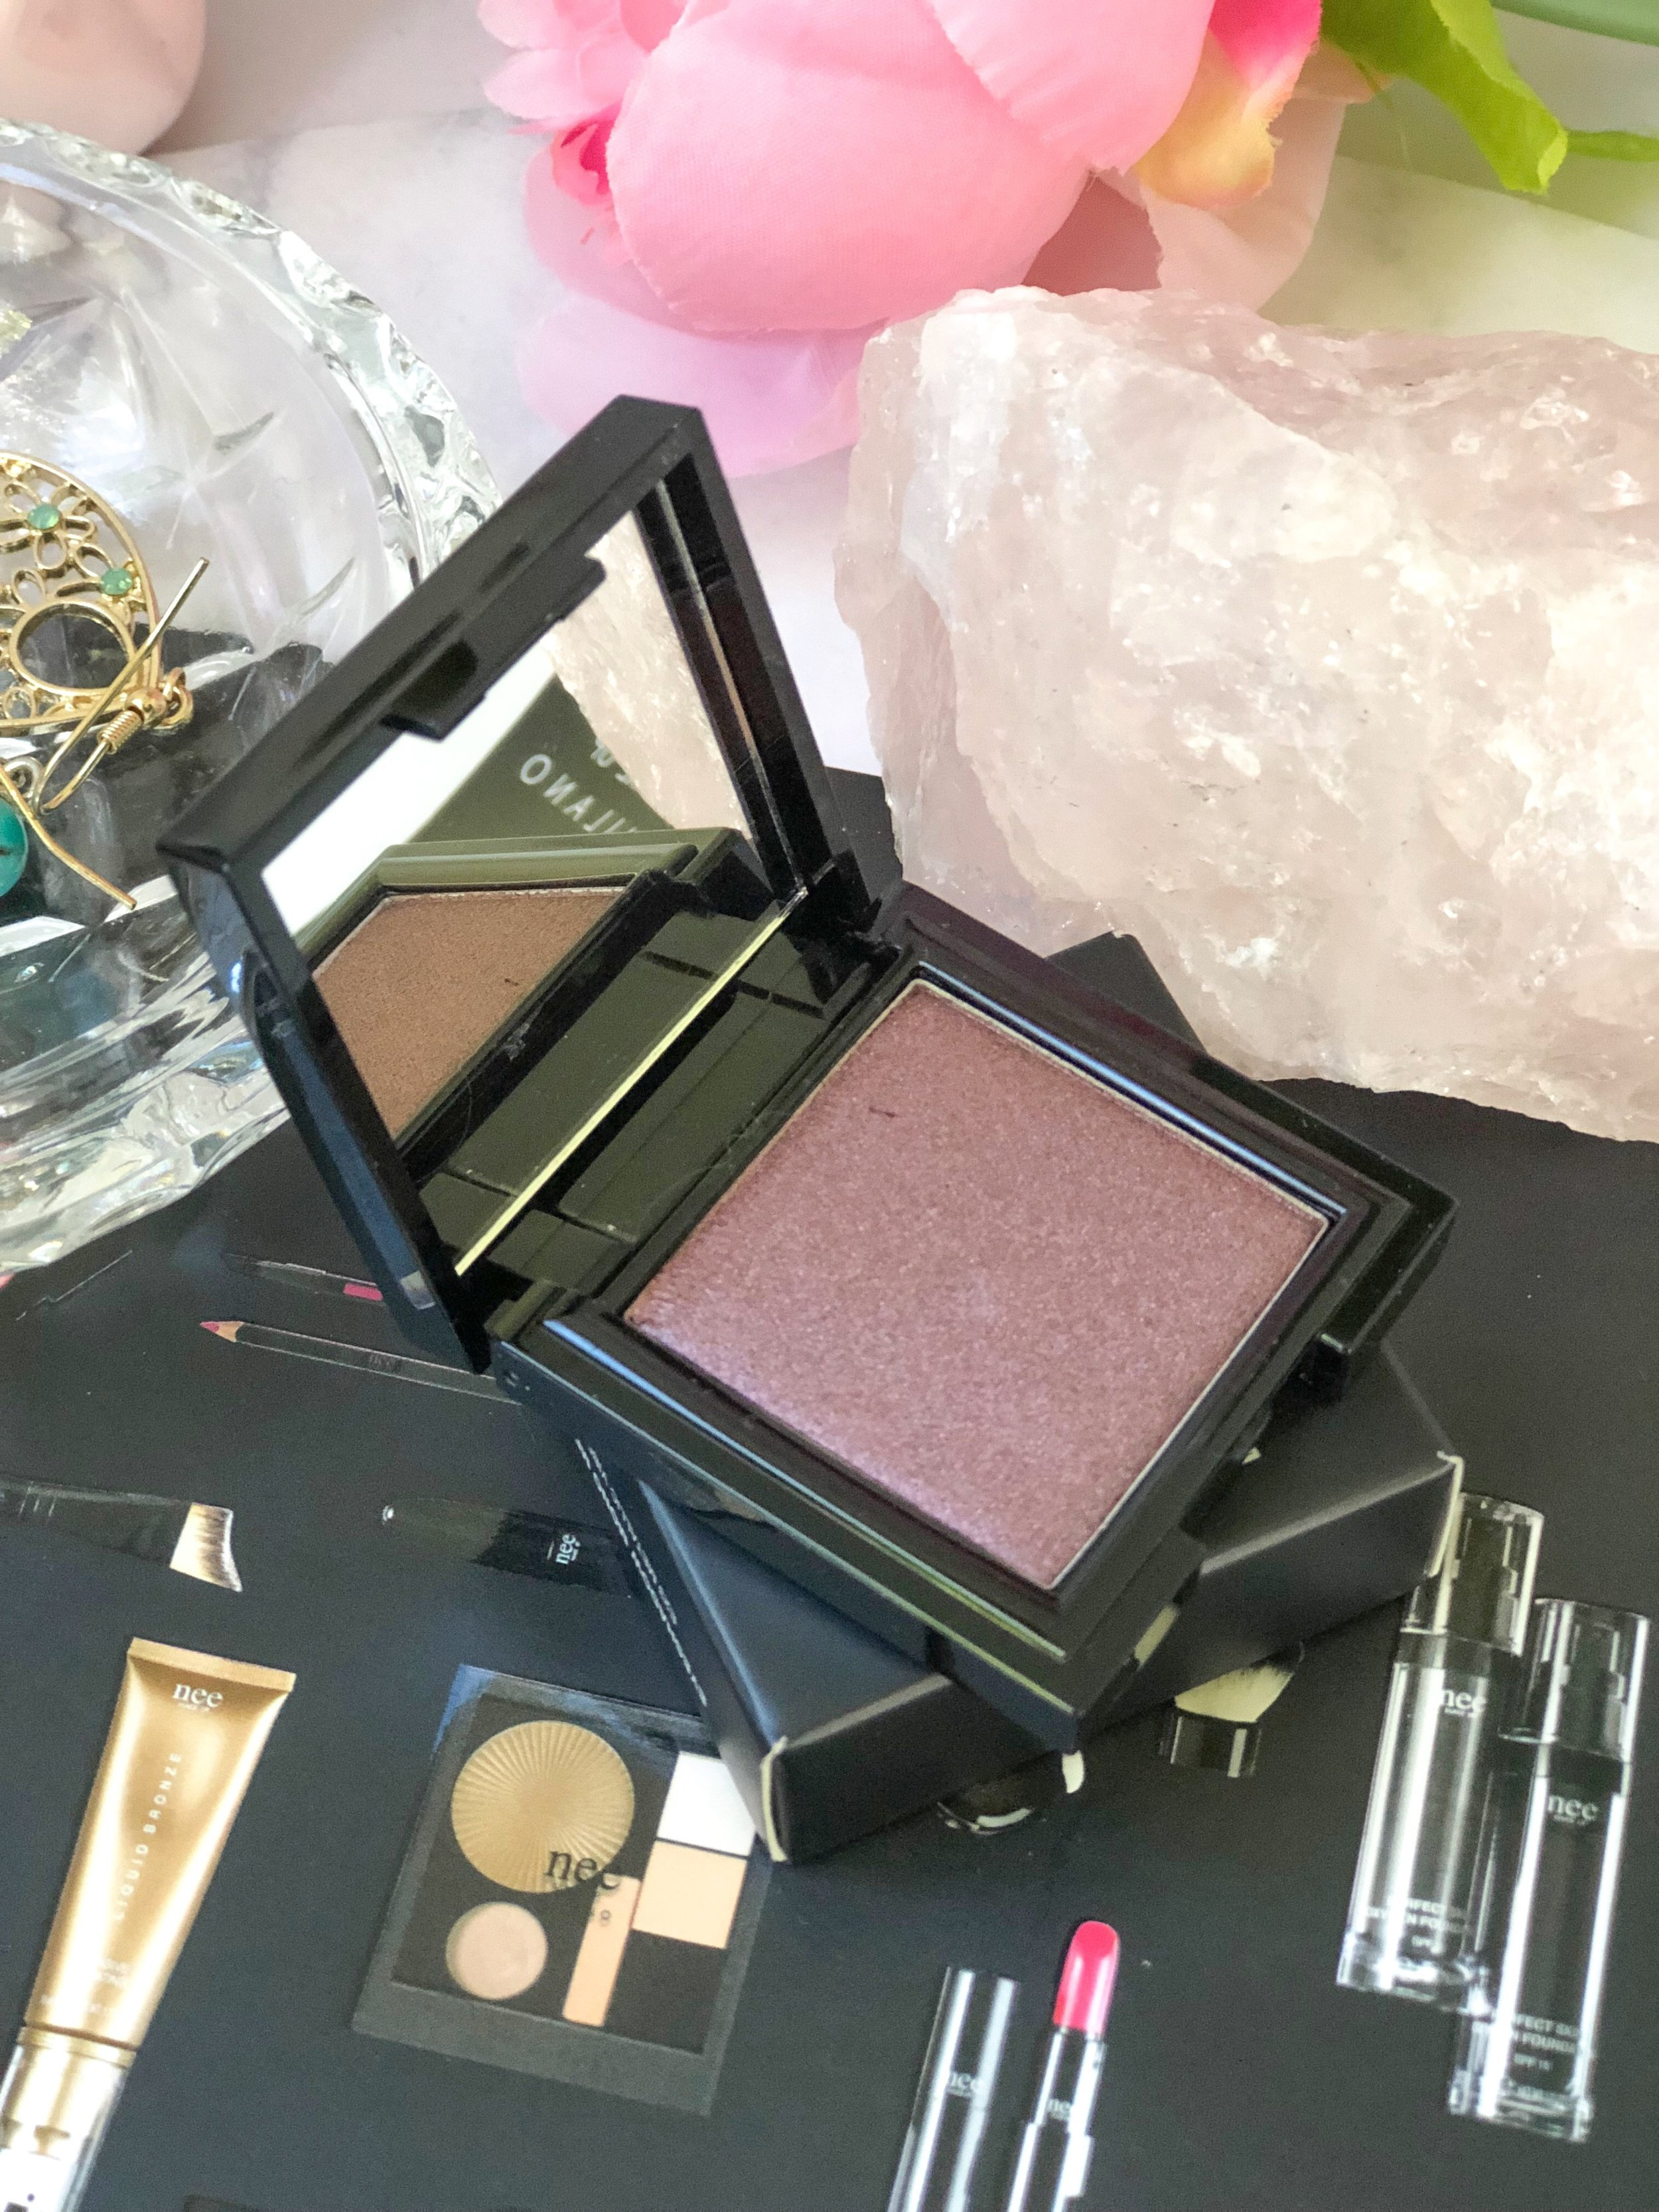 Nee Makeup Eyeshadow mono Metallic.jpg